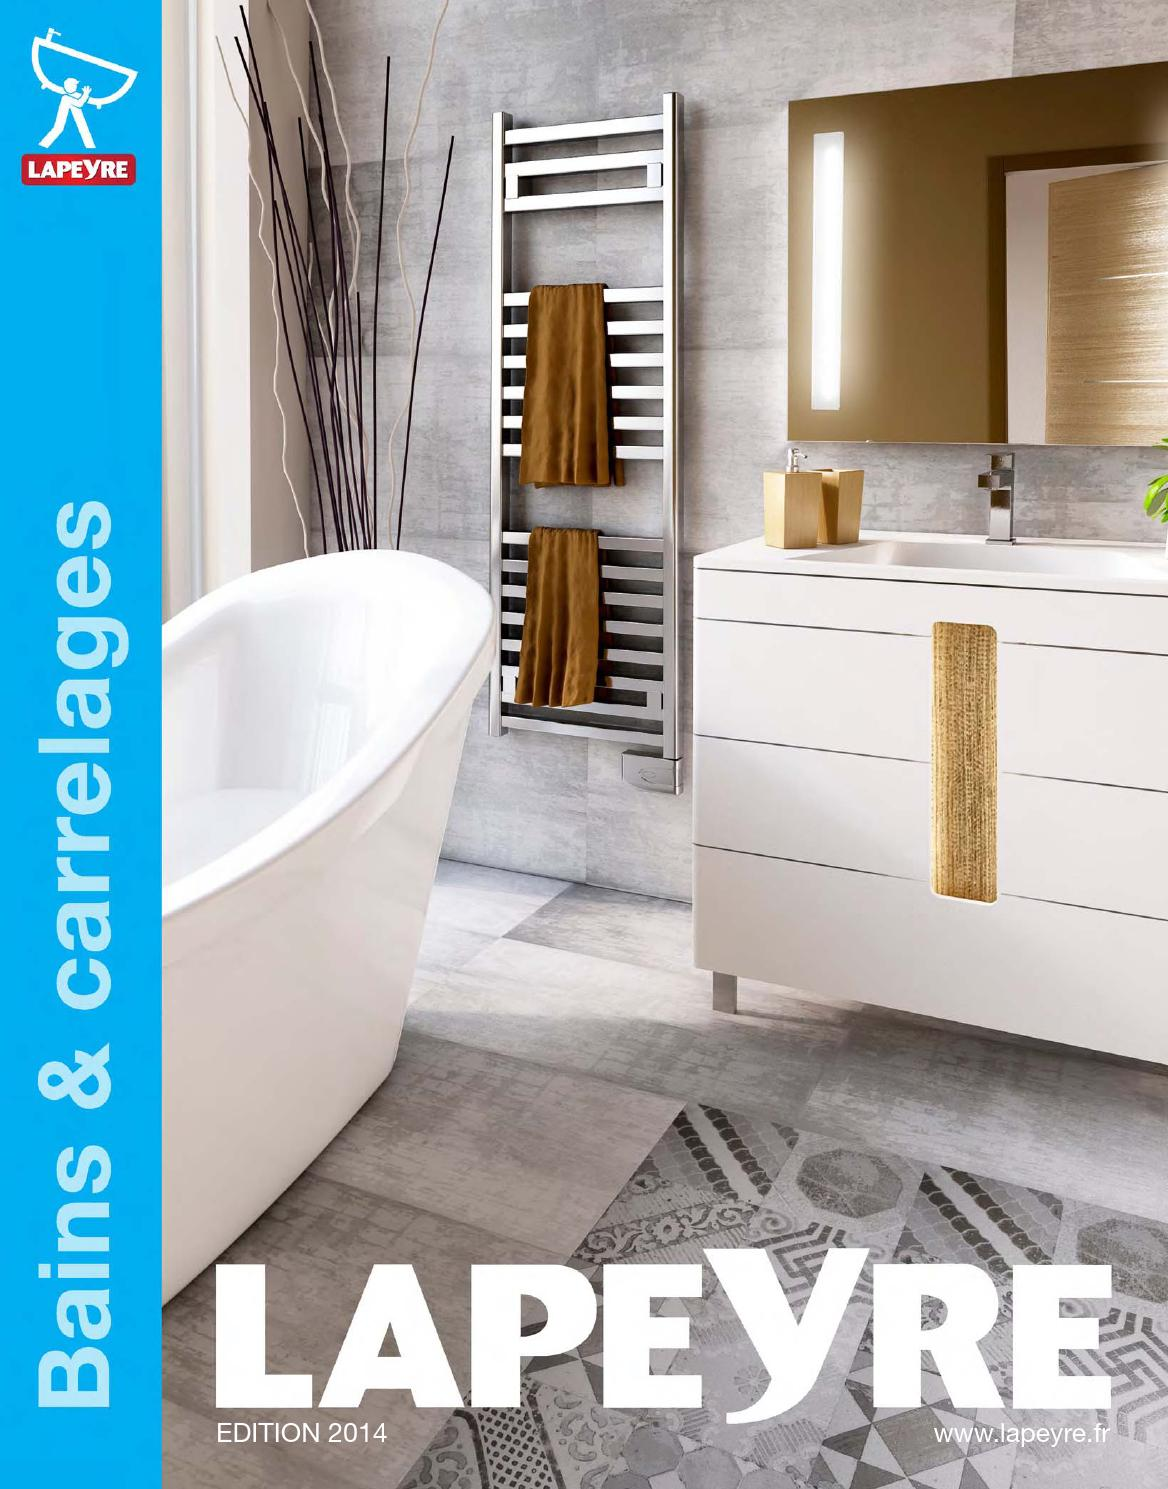 Catalogue Lapeyre - Bains & Carrelages 17 by joe monroe - issuu